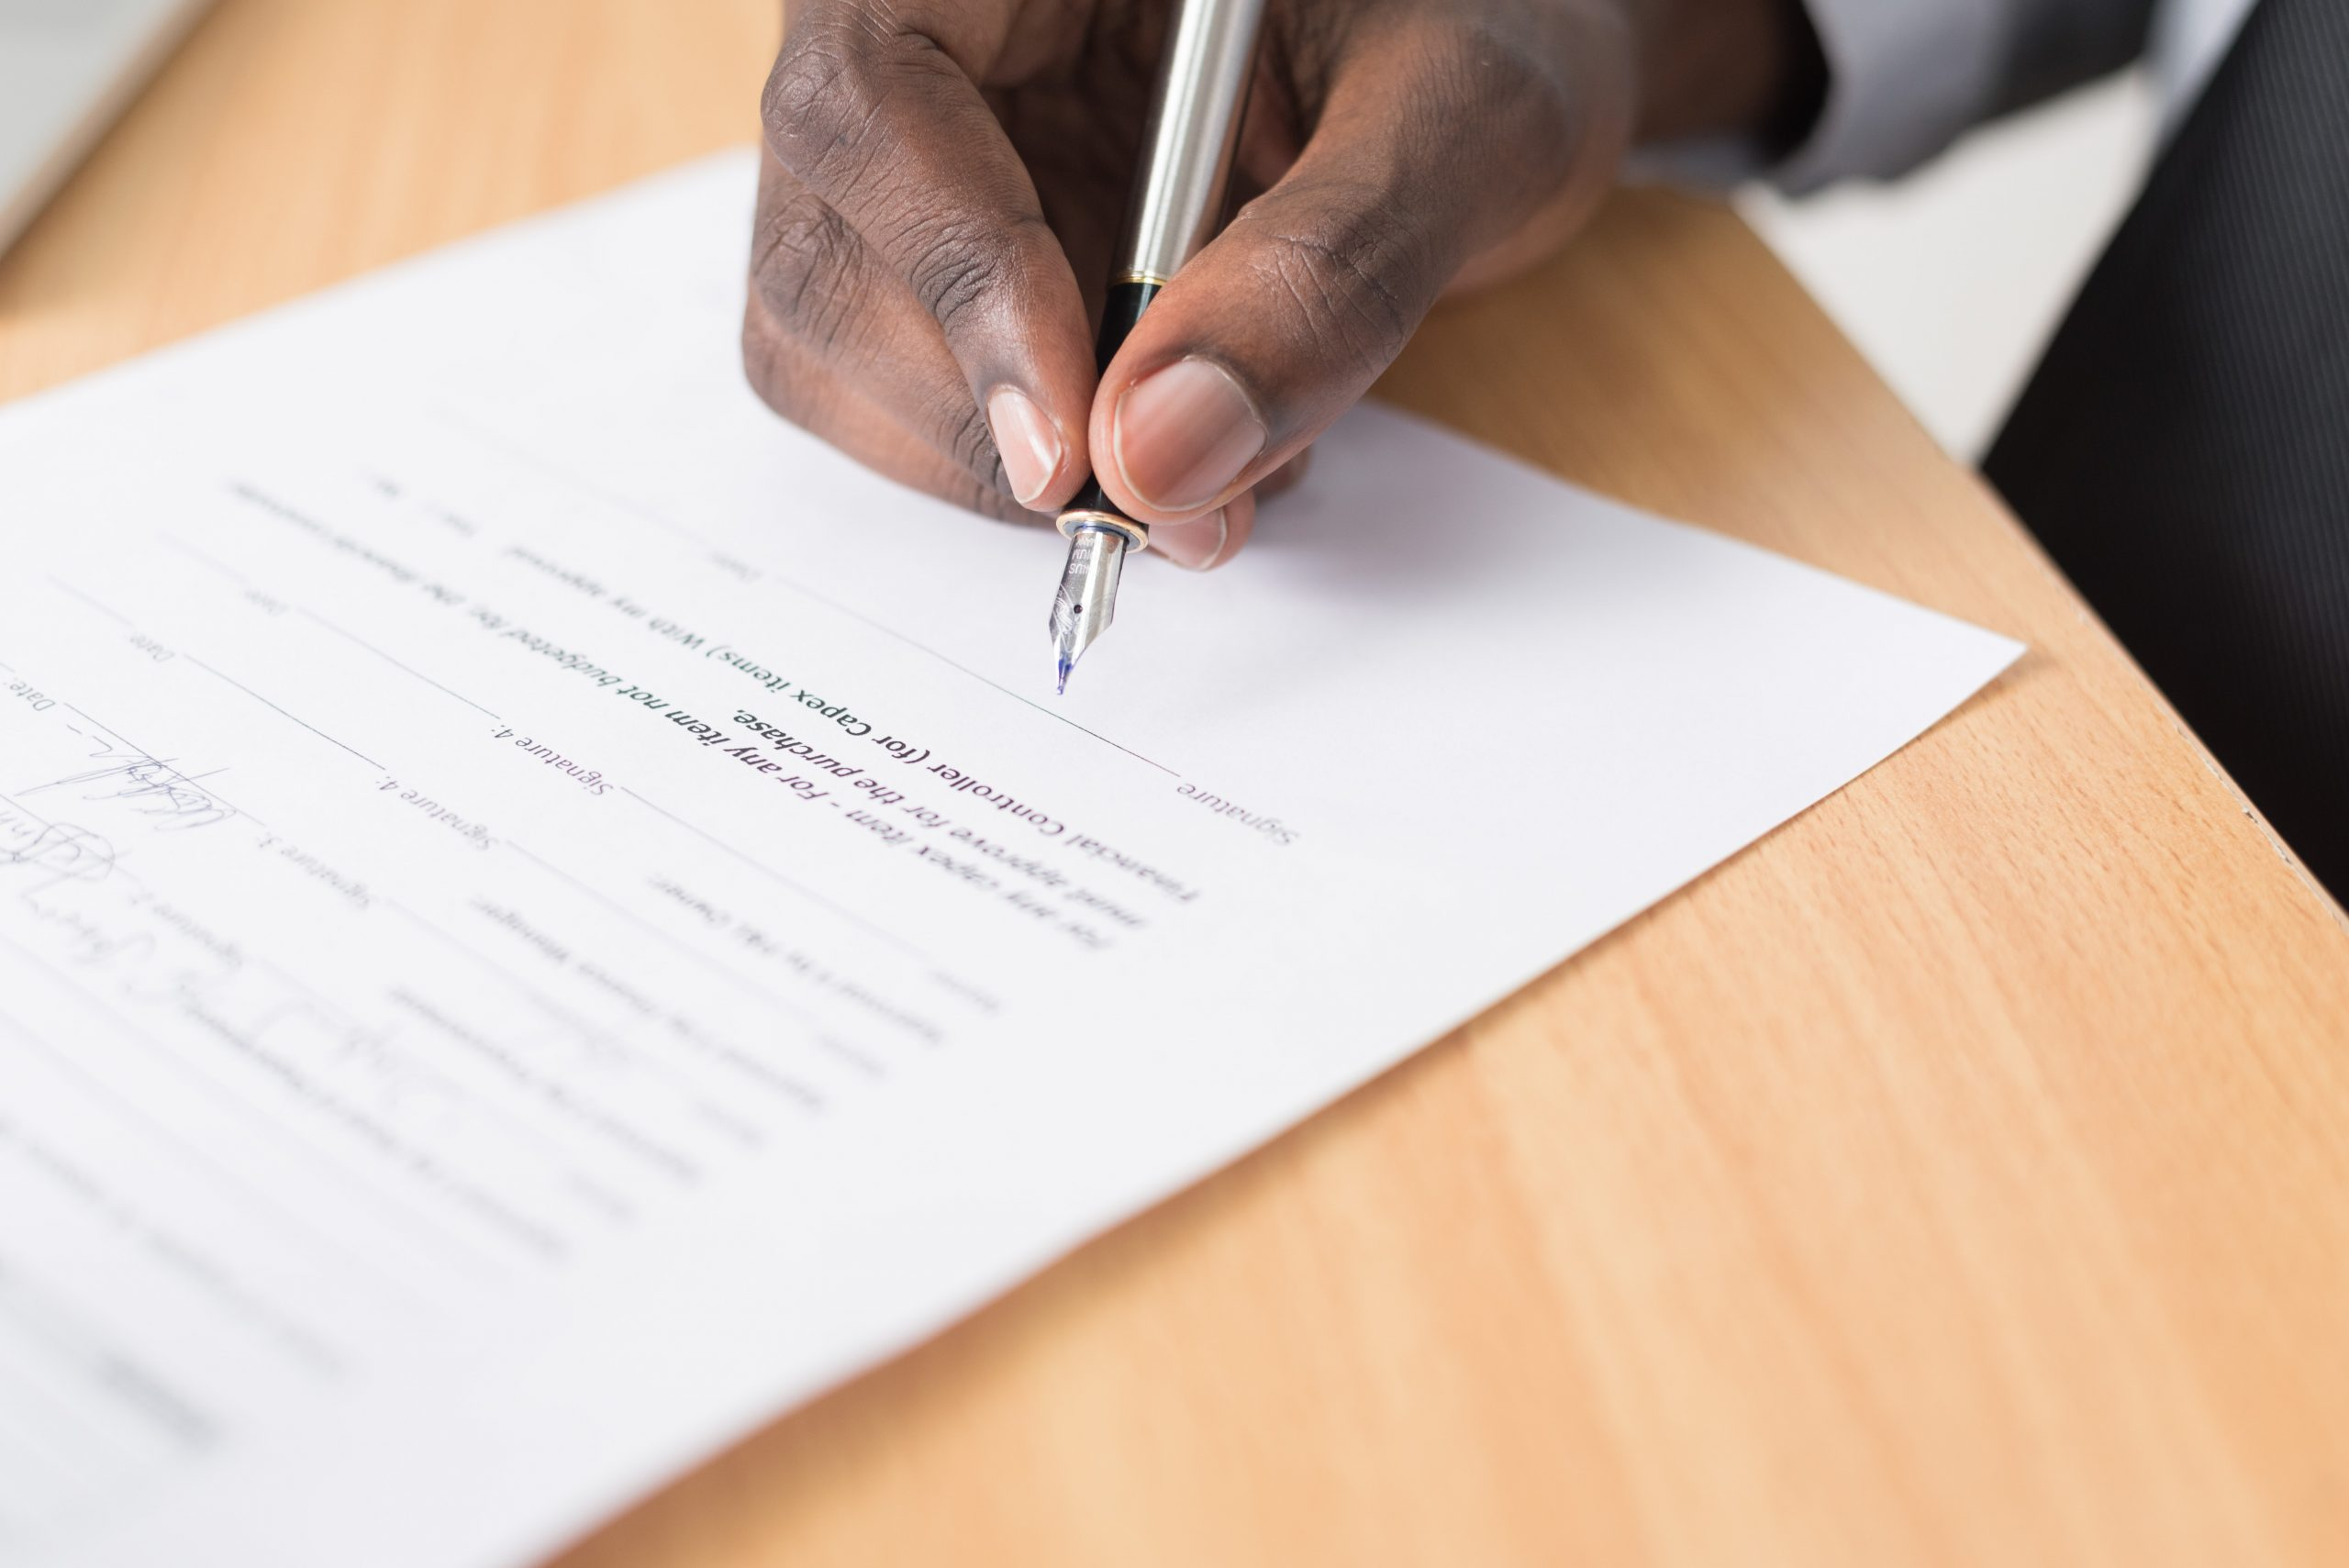 Requirements of a valid contract in South Africa